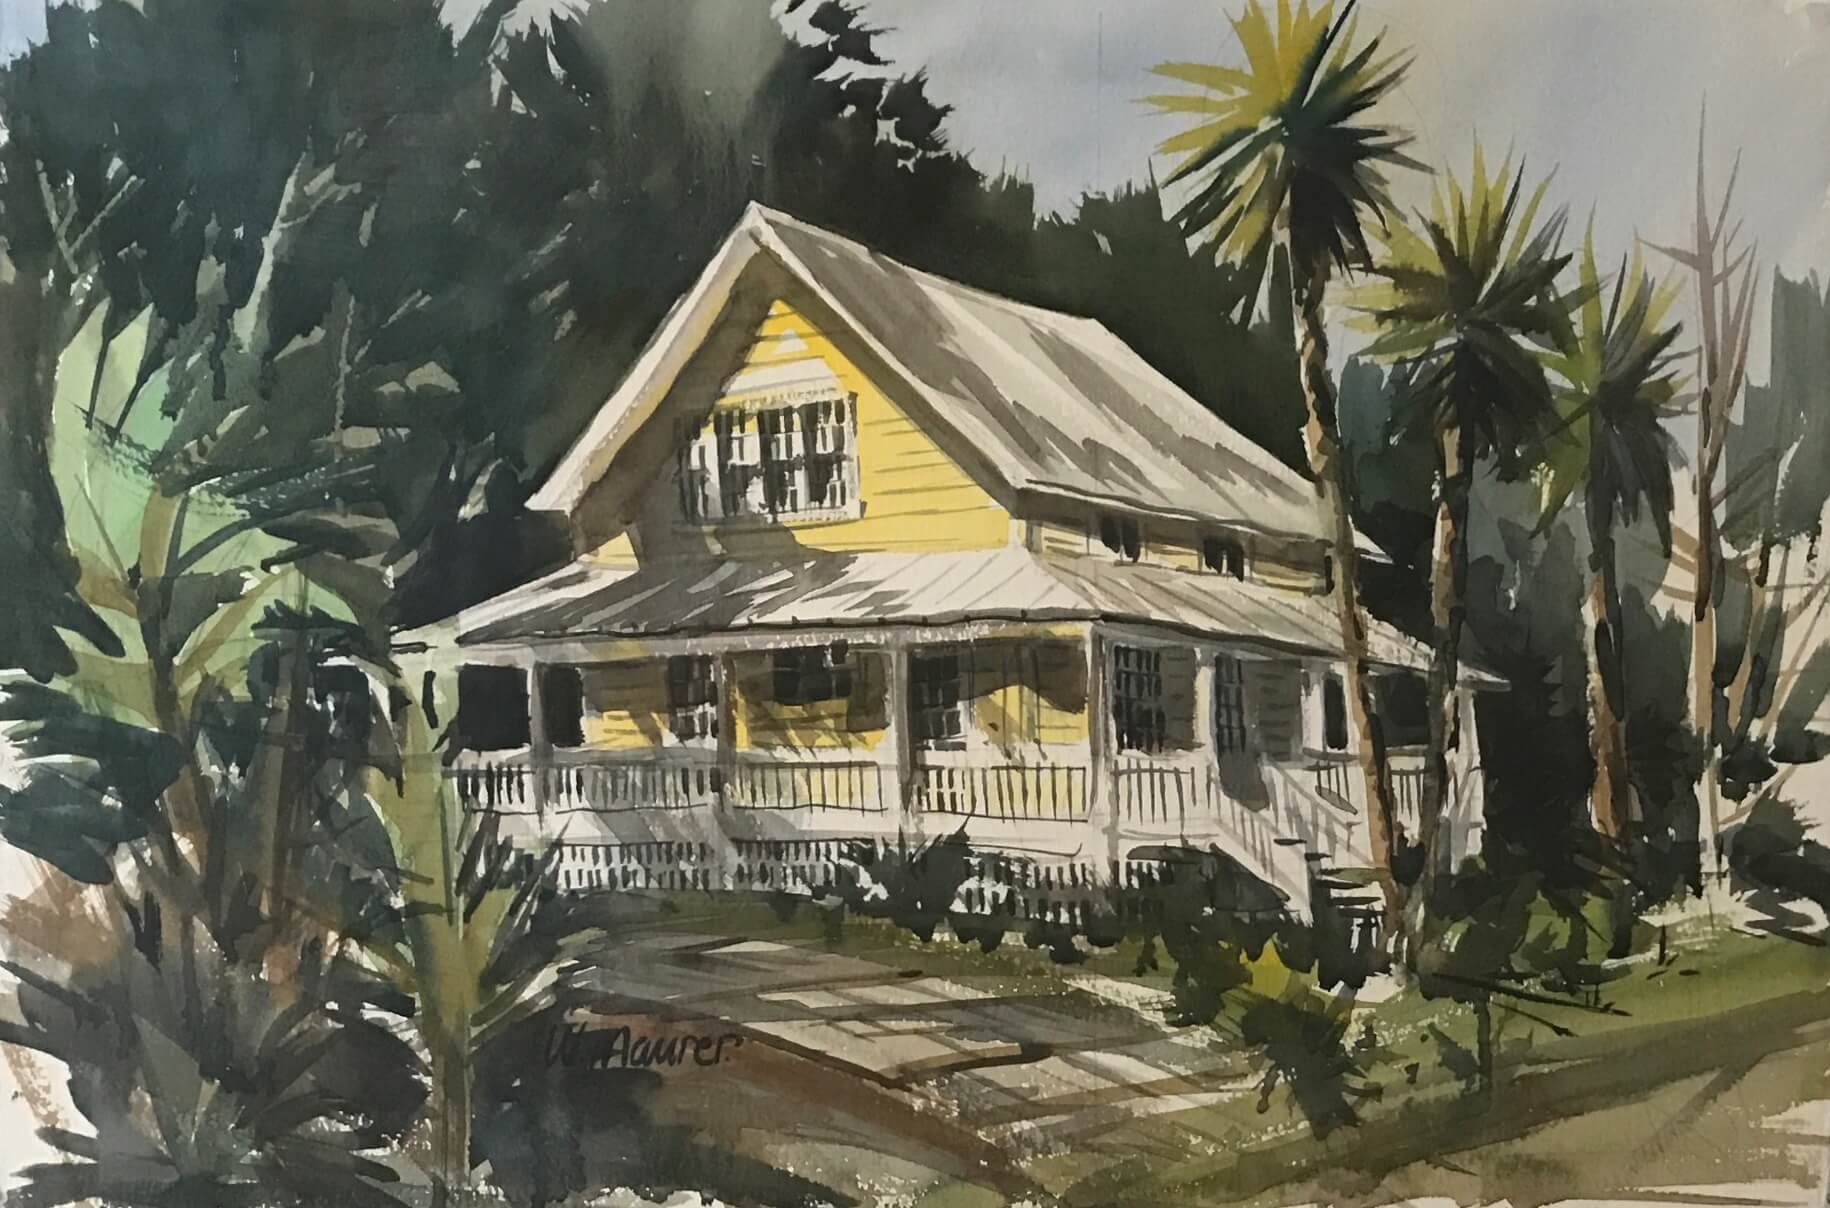 Yellow House on White Street in Old Town painting by Bill Mauer